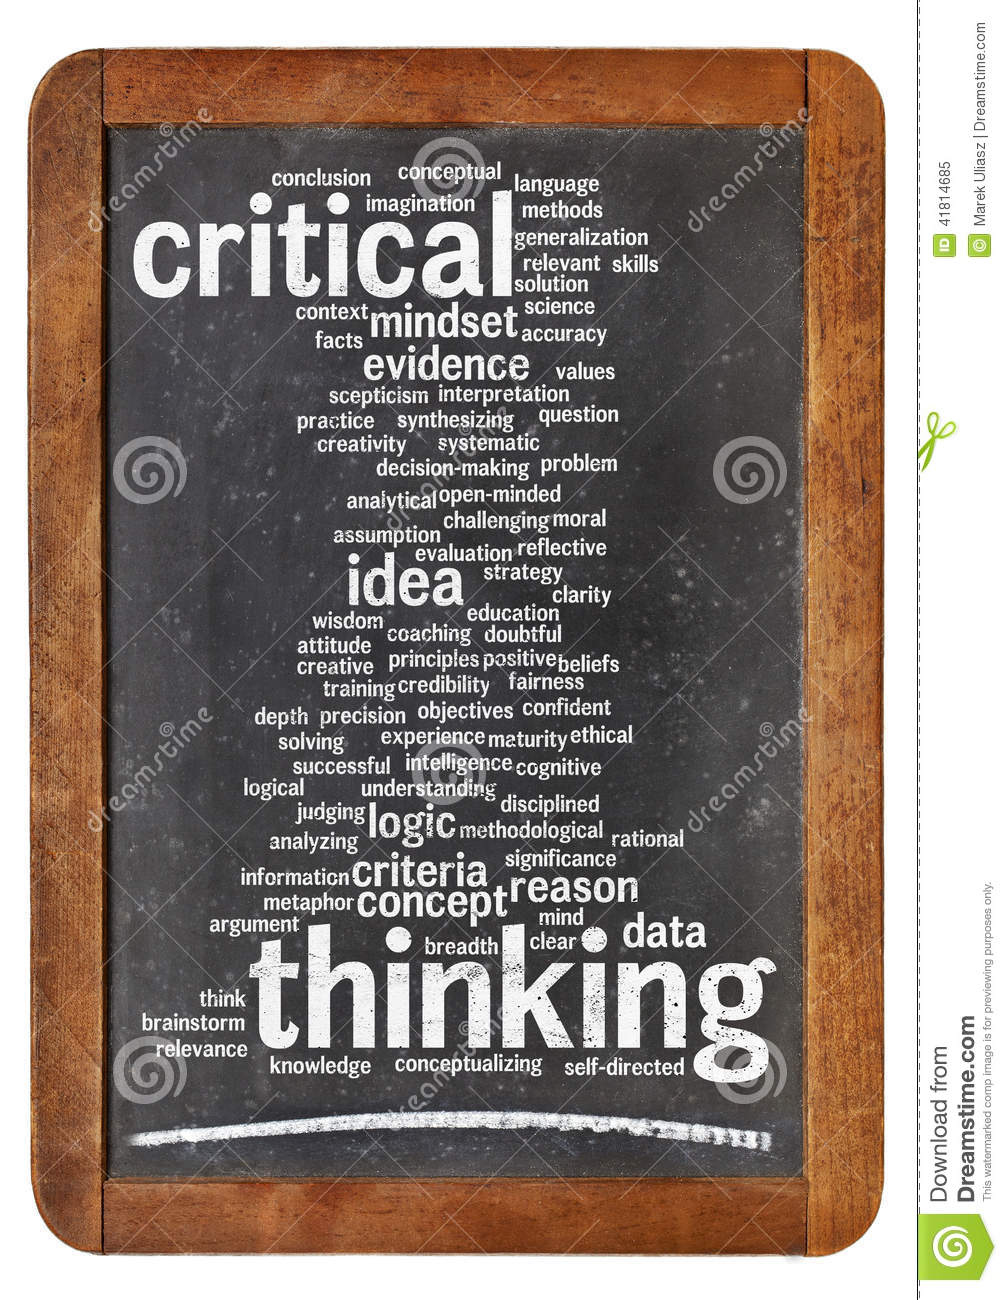 another word for critical thinking Define analytic thinking analytic thinking synonyms, analytic thinking pronunciation, analytic thinking translation, english dictionary definition of analytic thinking noun 1 analytic thinking - the abstract separation of a whole into its constituent parts in order to study the parts and their relations analysis abstract.